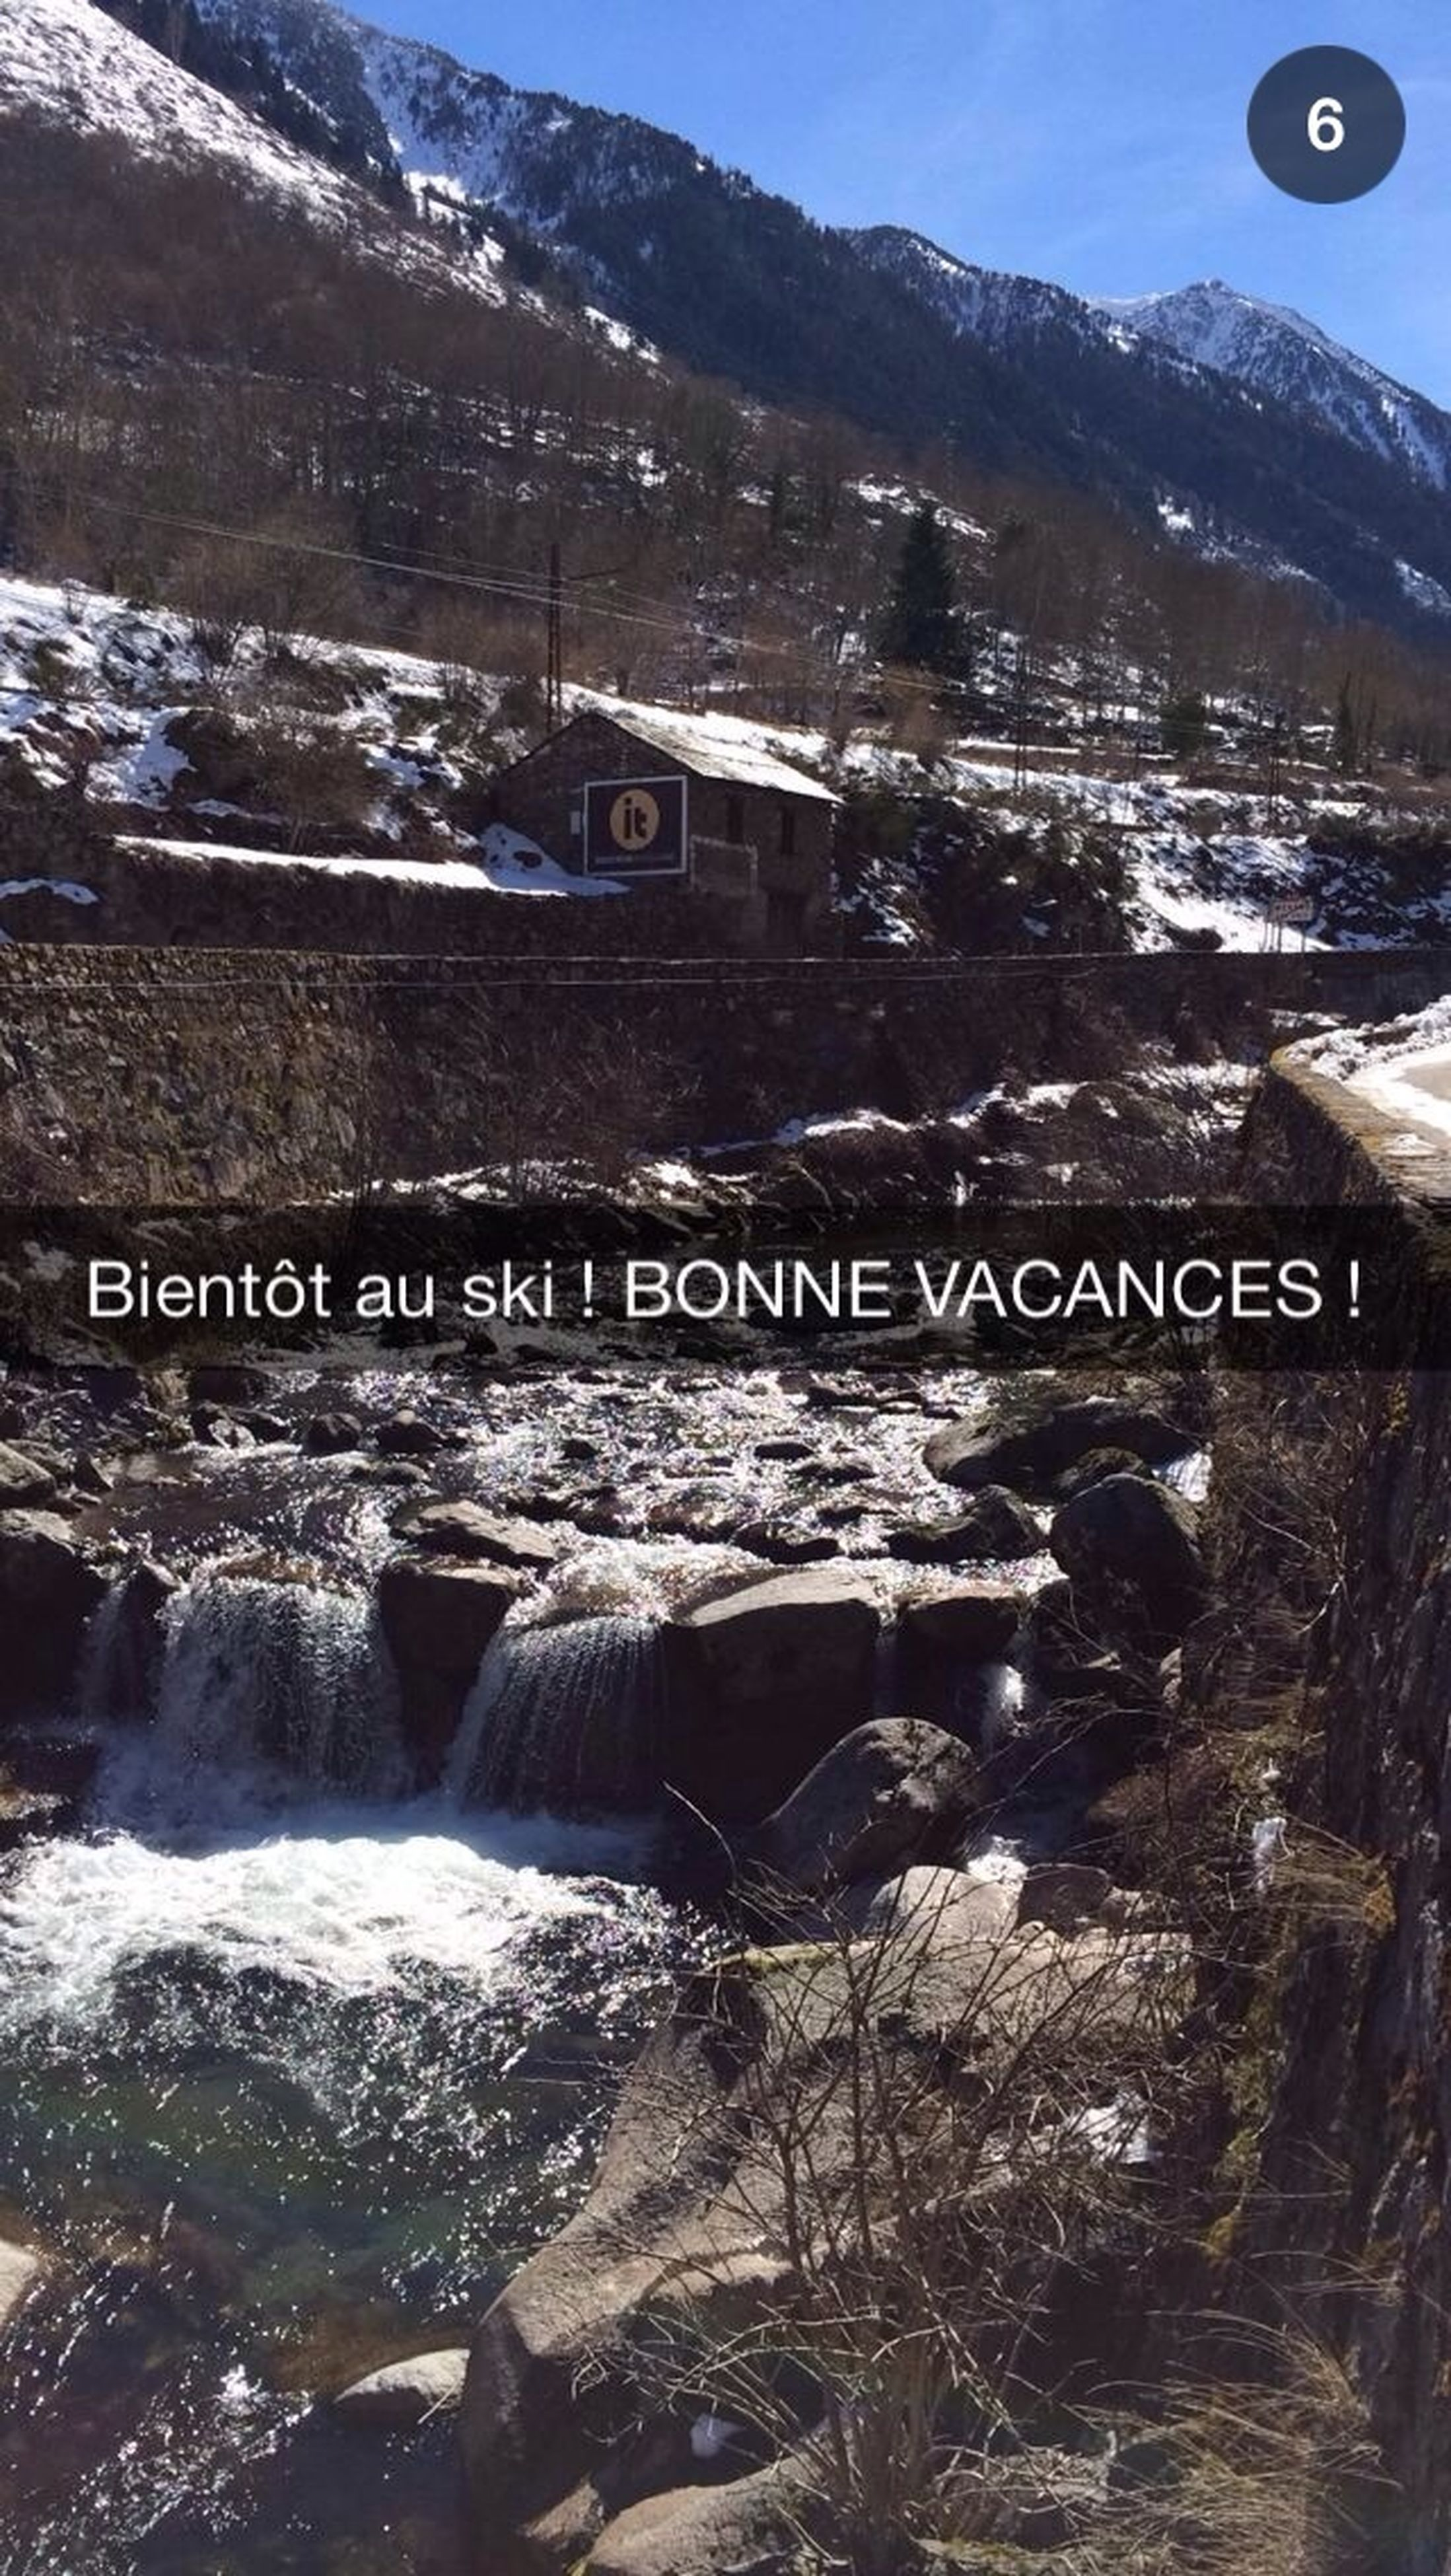 mountain, text, western script, mountain range, communication, water, river, nature, scenics, rock - object, snow, beauty in nature, day, landscape, winter, outdoors, tranquility, tranquil scene, sign, cold temperature